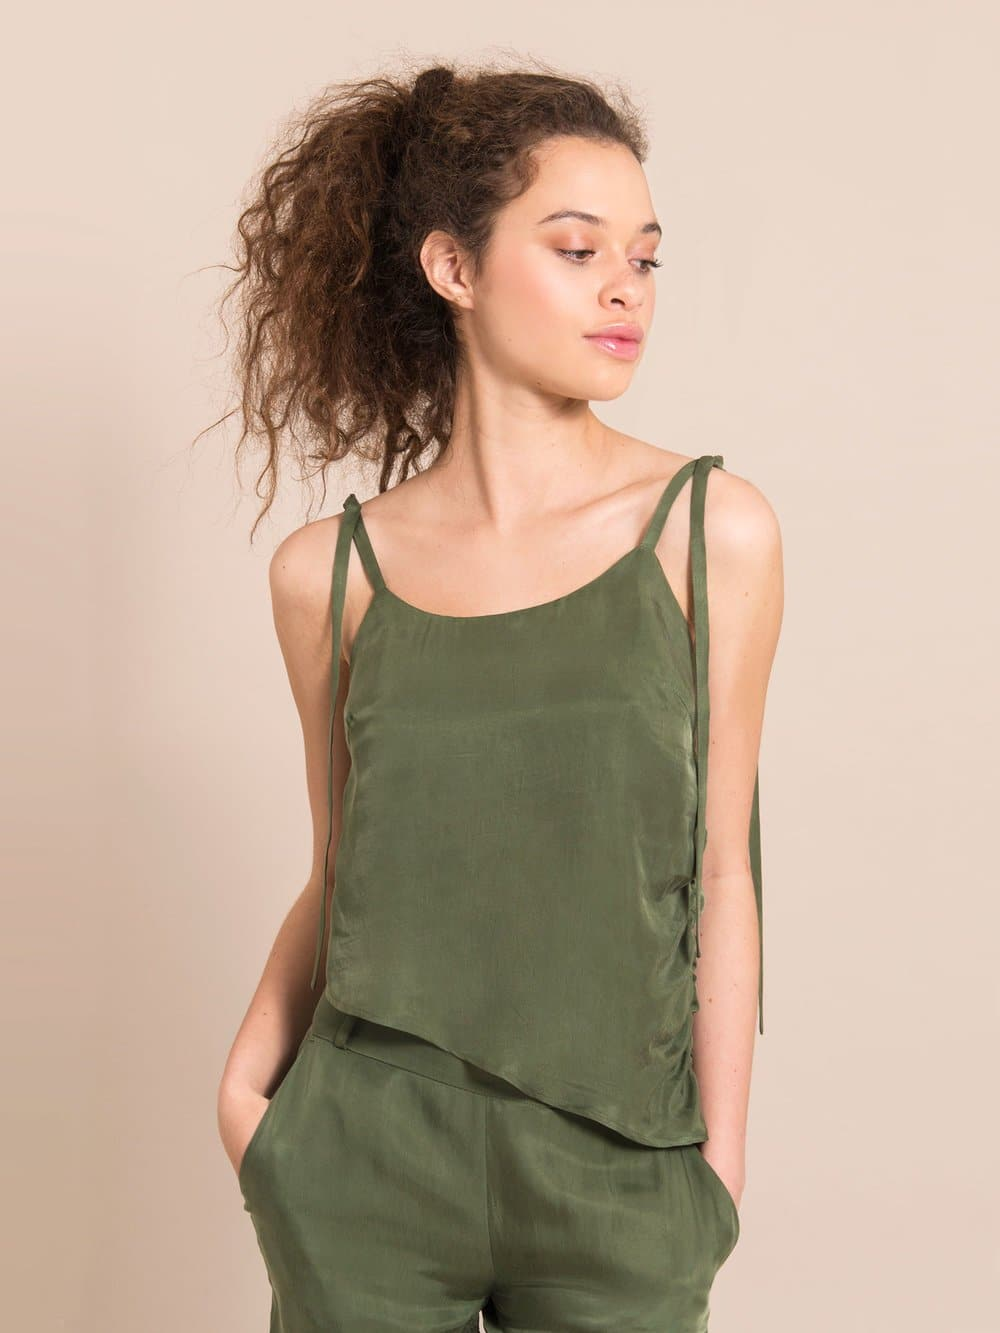 Frontshot of a girl wearing a sustainable  military green assymetric top with adjustable shoulder straps